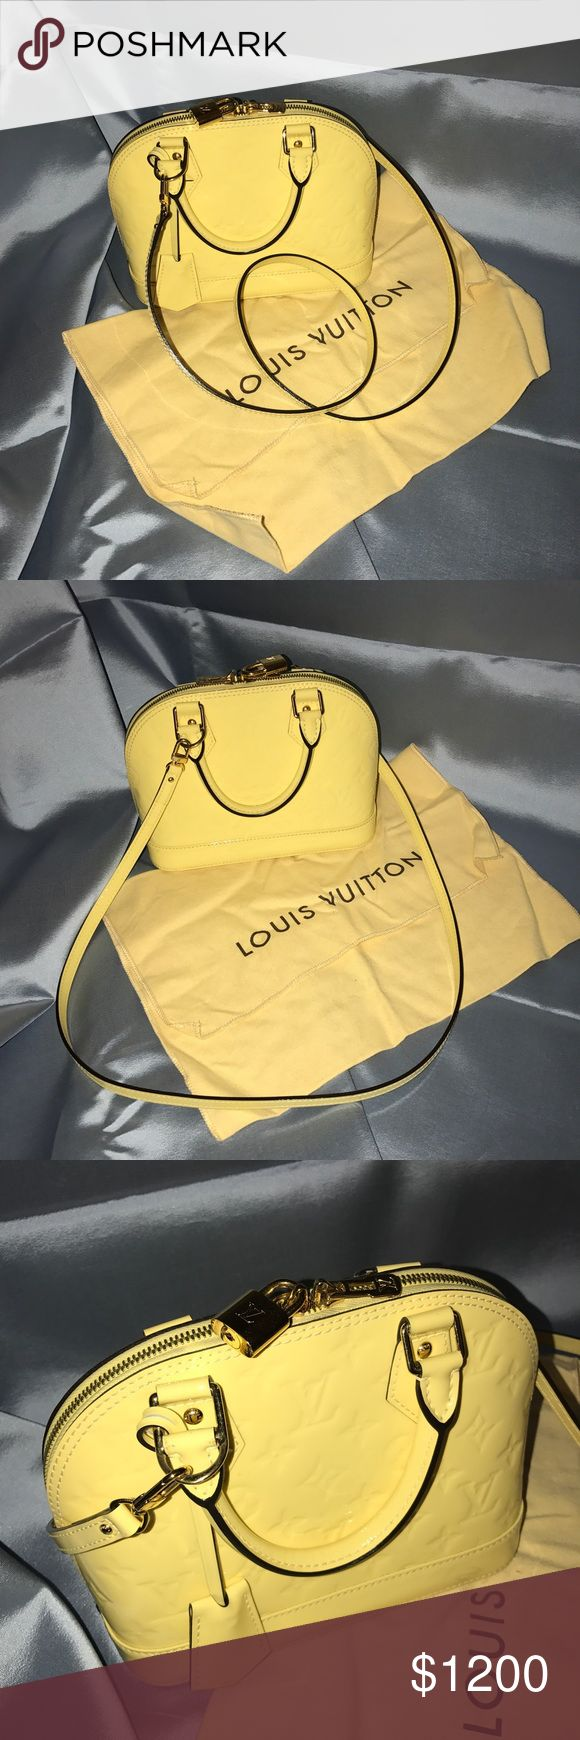 Louis Vuitton Alma BB Bag In good condition. Very small sign of wearing. Has original dust bag. A great summer bag just in time. Louis Vuitton Bags Crossbody Bags